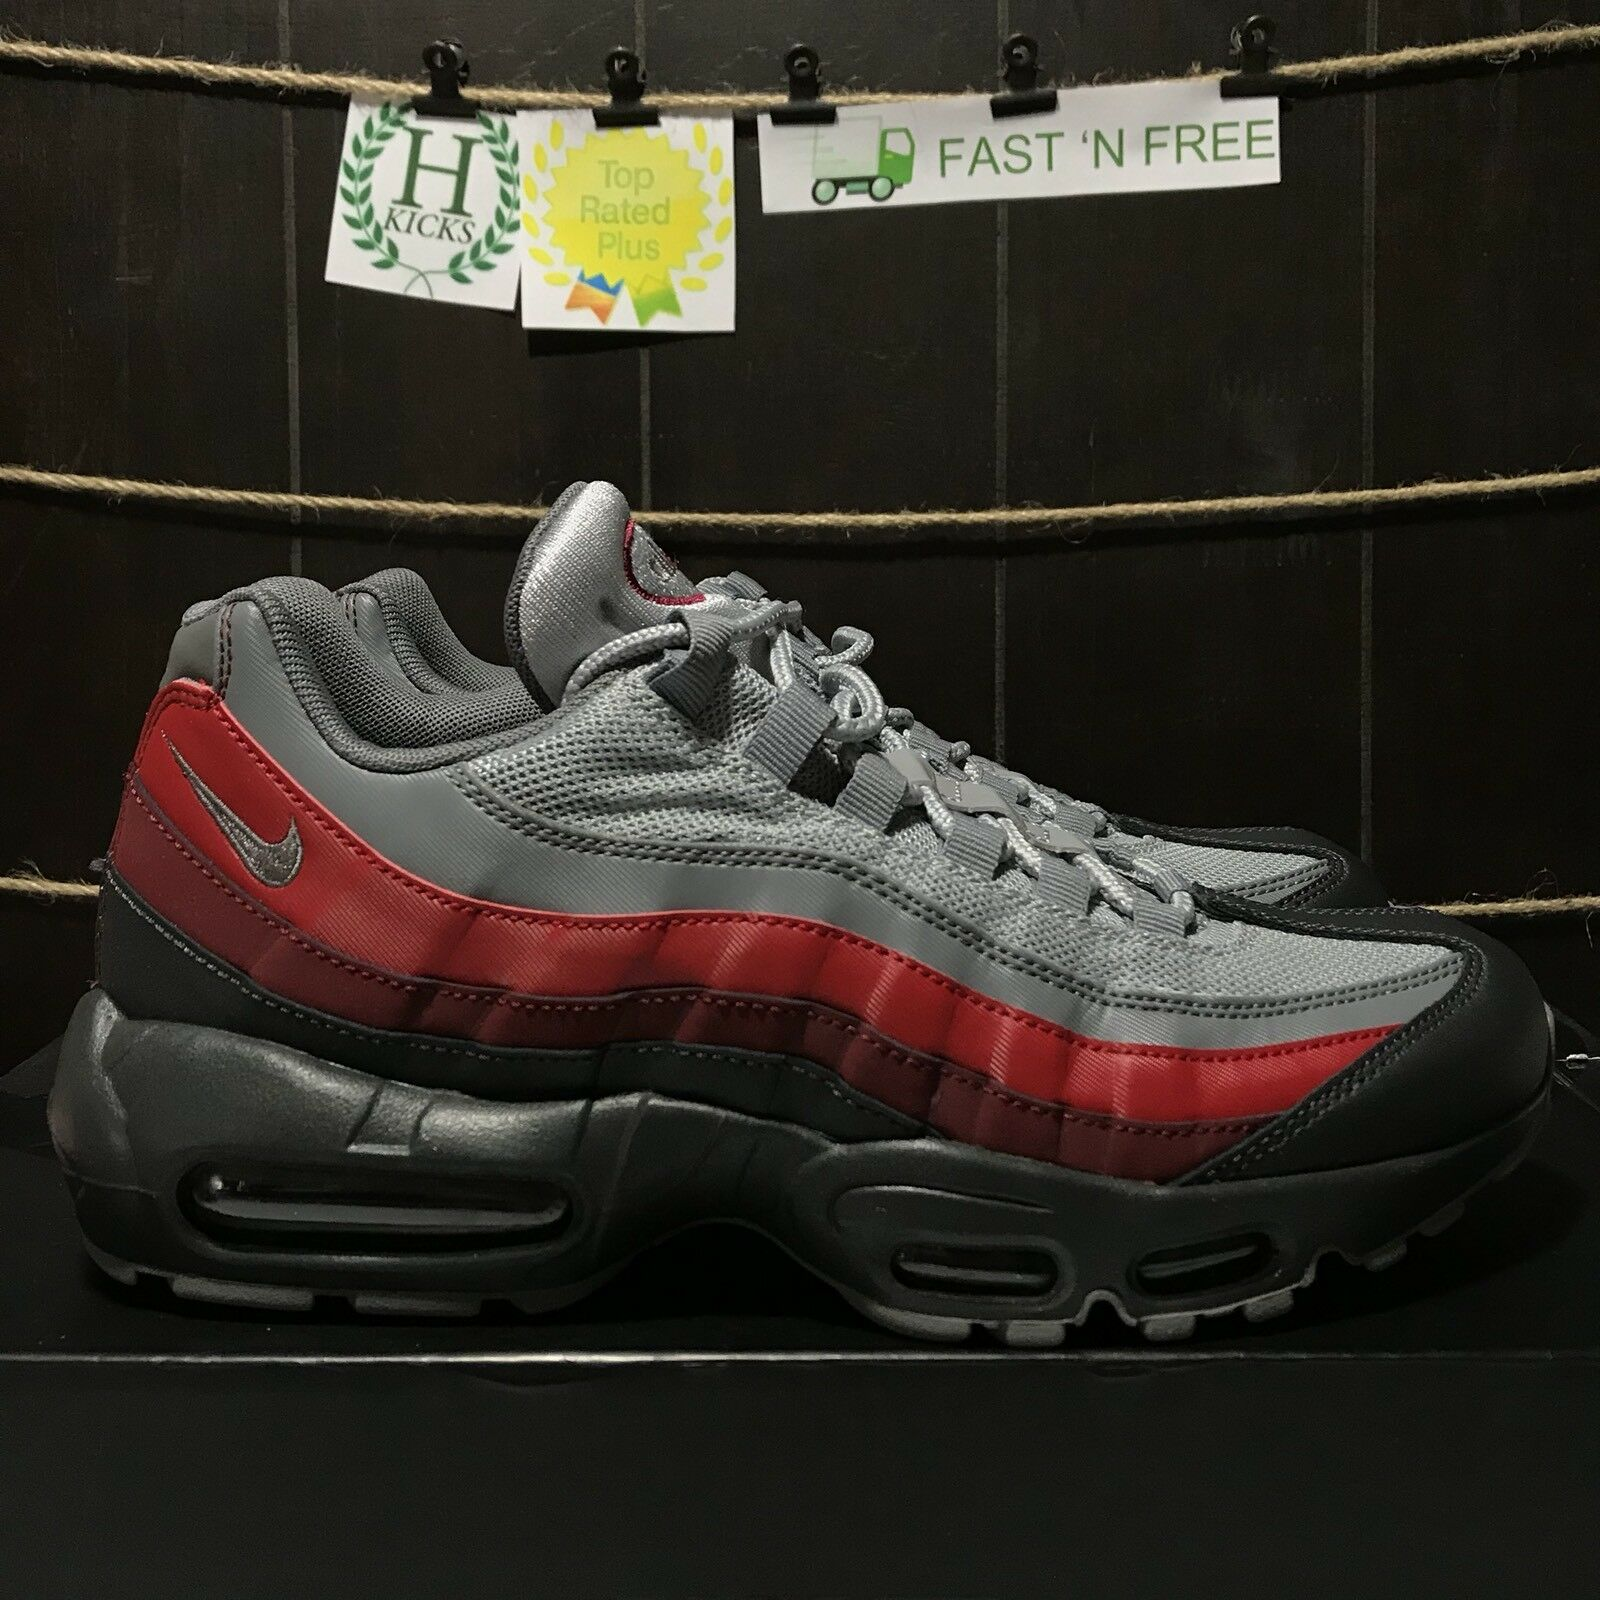 Nike Air Max 95 Antrhacite Cool Wolf Grey Red Maroon Burgundy Size 8 749766 025